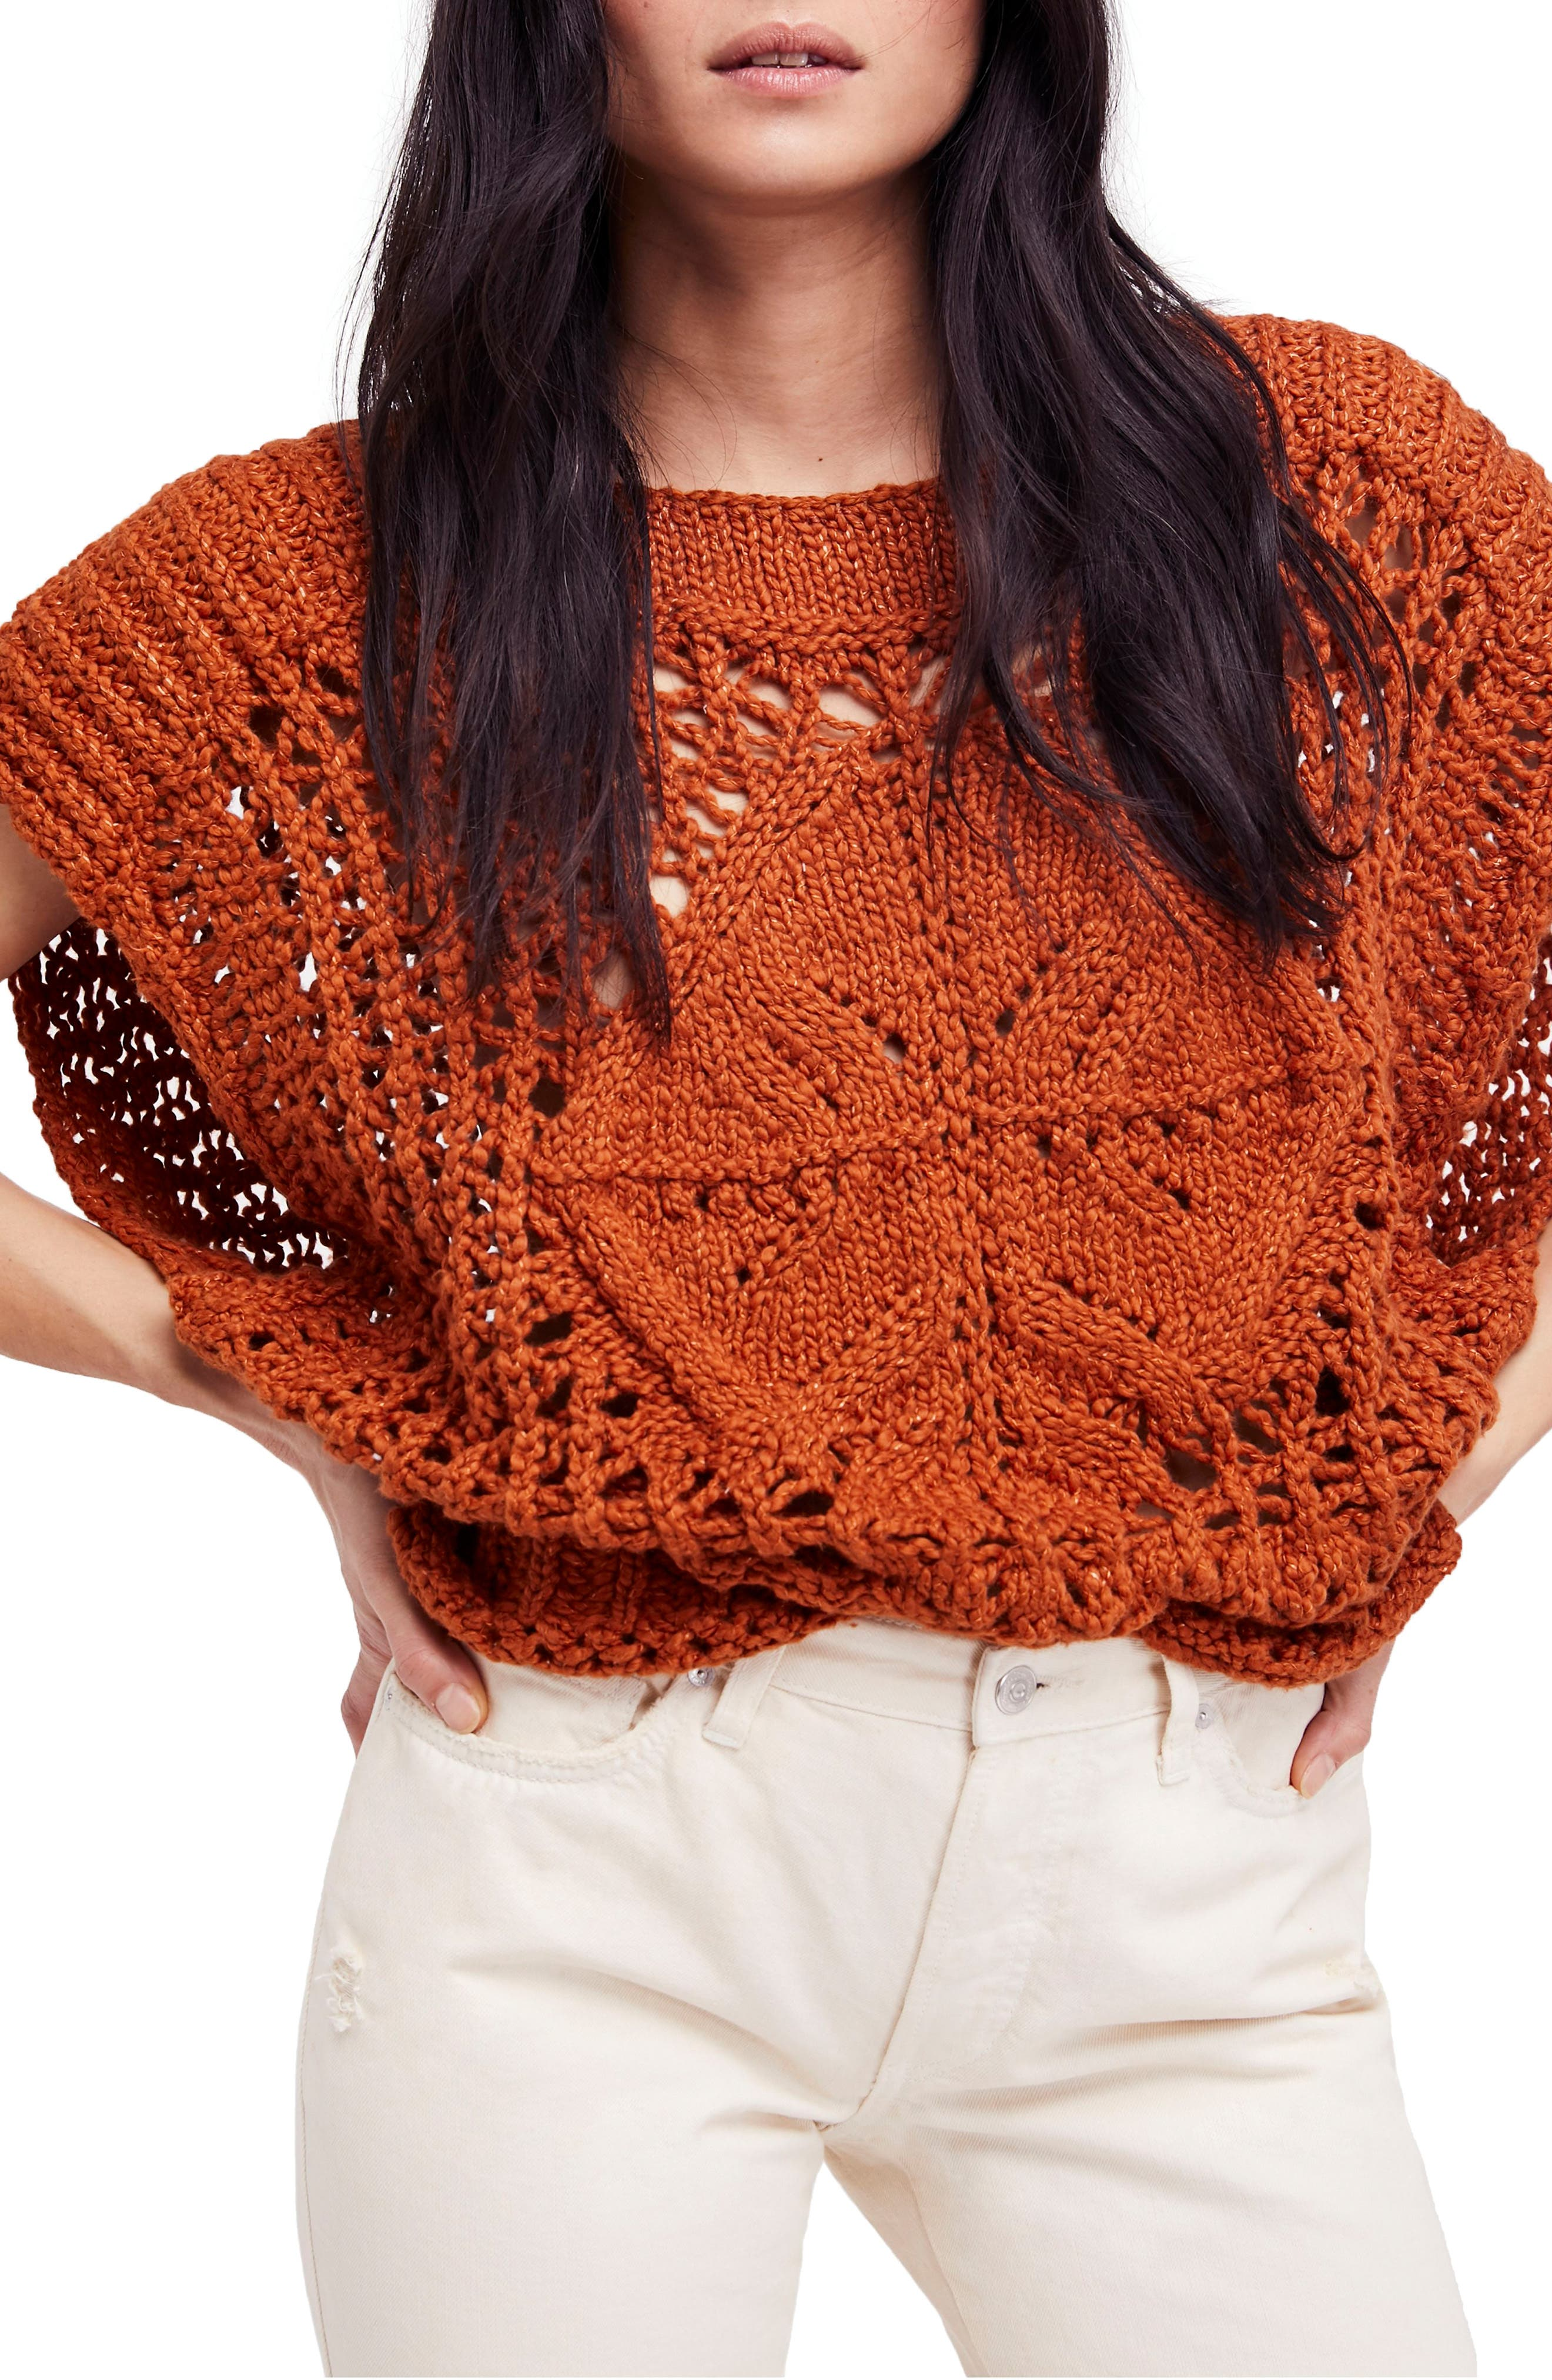 Diamond in the Rough Sweater,                         Main,                         color, Terracotta